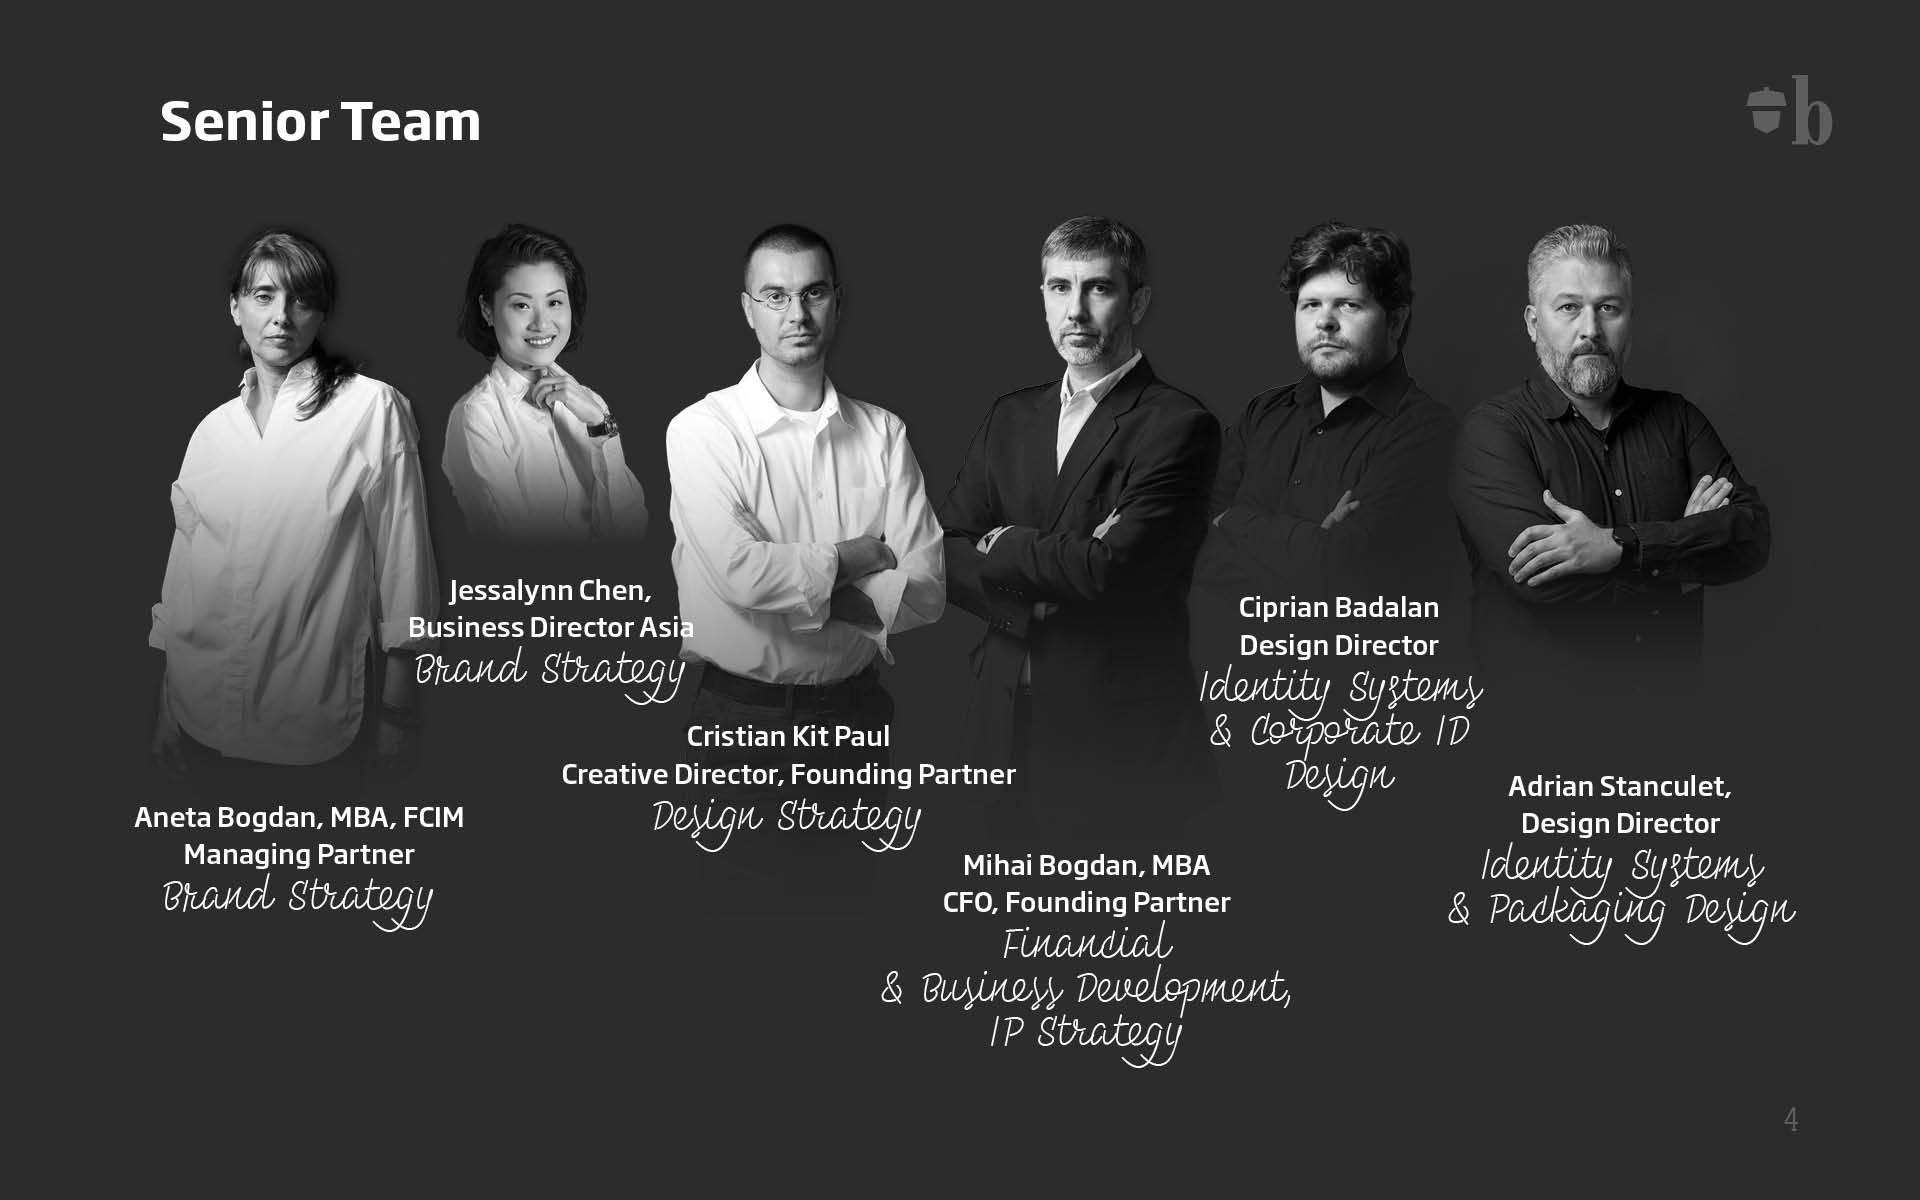 Senior Team: Aneta Bogdan, MBA, FCIM, Managing Partner, Brand Strategy; Jessalynn Chen, Business Director Asia, Brand Strategy, Business Development; Cristian Kit Paul, Creative Director, Founding Partner, Design Strategy; Mihai Bogdan, MBA, CFO, Founding Partner, Financial Business Development, IP Strategy; Ciprian Badalan,Design Director, Identity Systems, Corporate ID Design; Adrian Stanculet, Design Director, Identity Systems, Packaging Design.